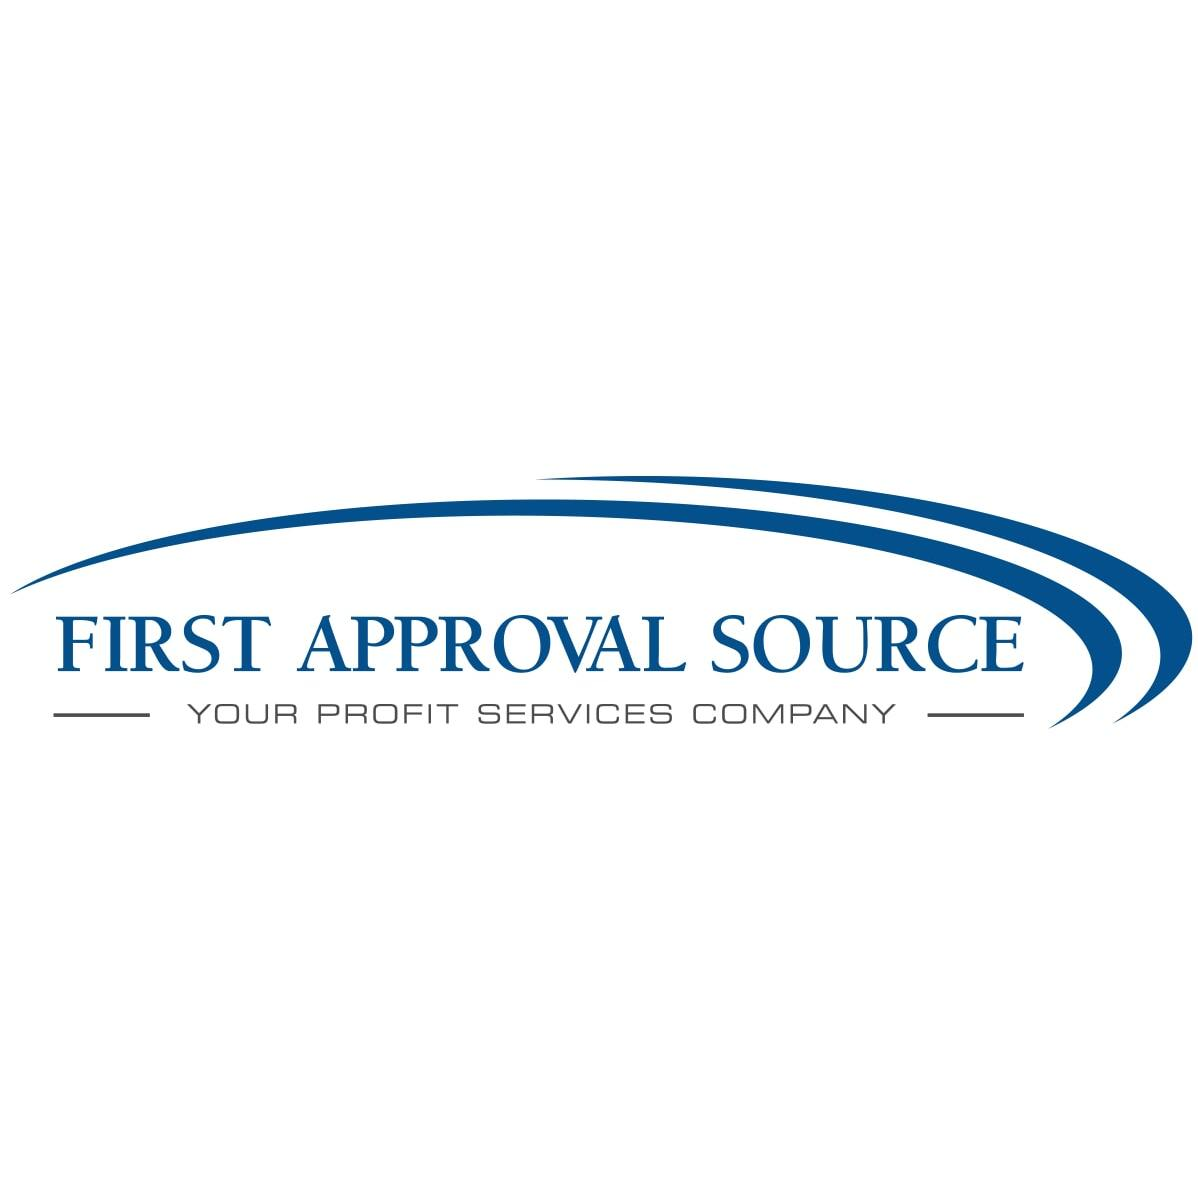 First Approval Source